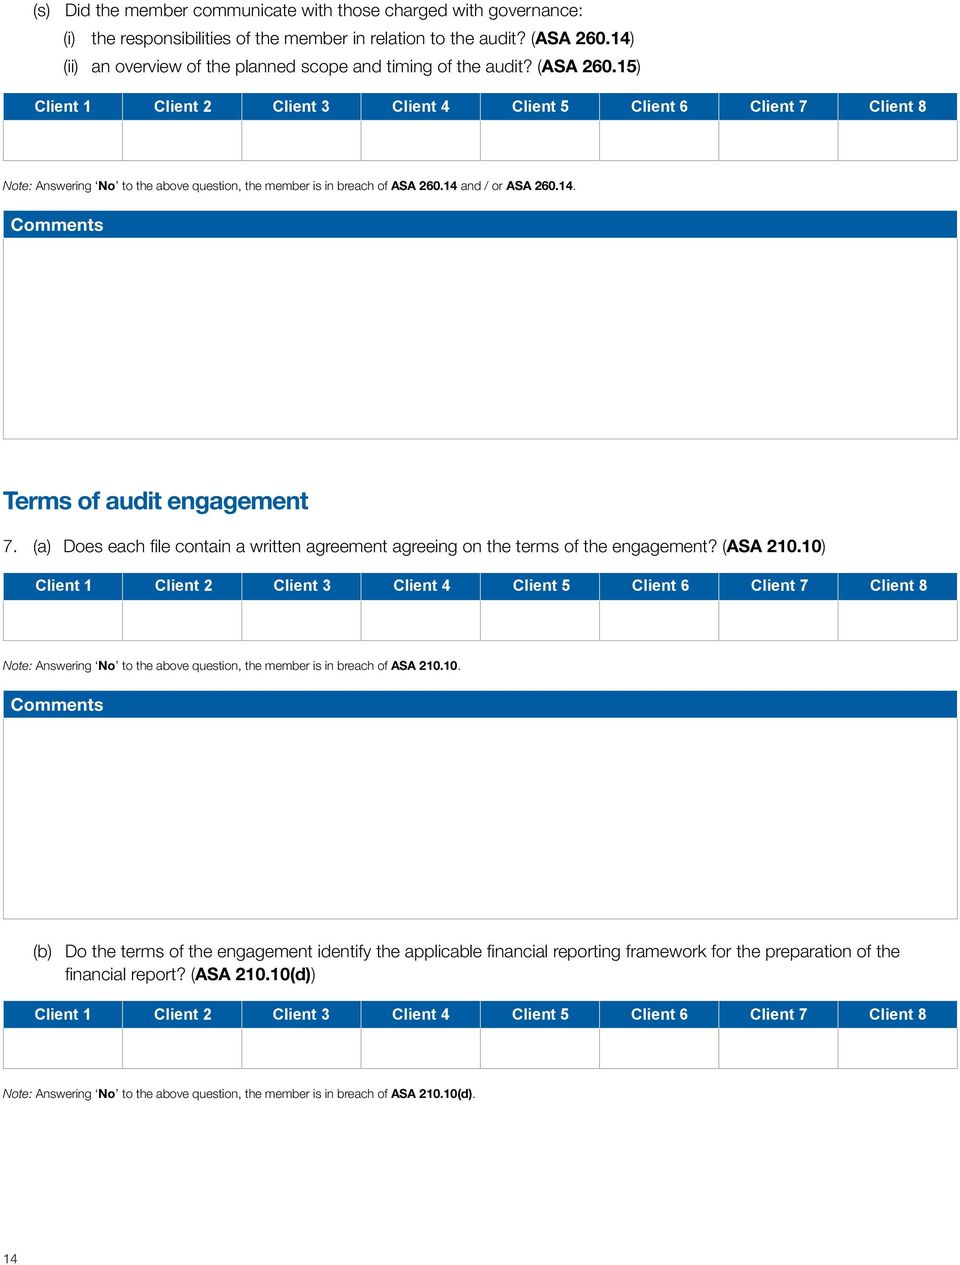 (a) Does each file contain a written agreement agreeing on the terms of the engagement? (ASA 210.